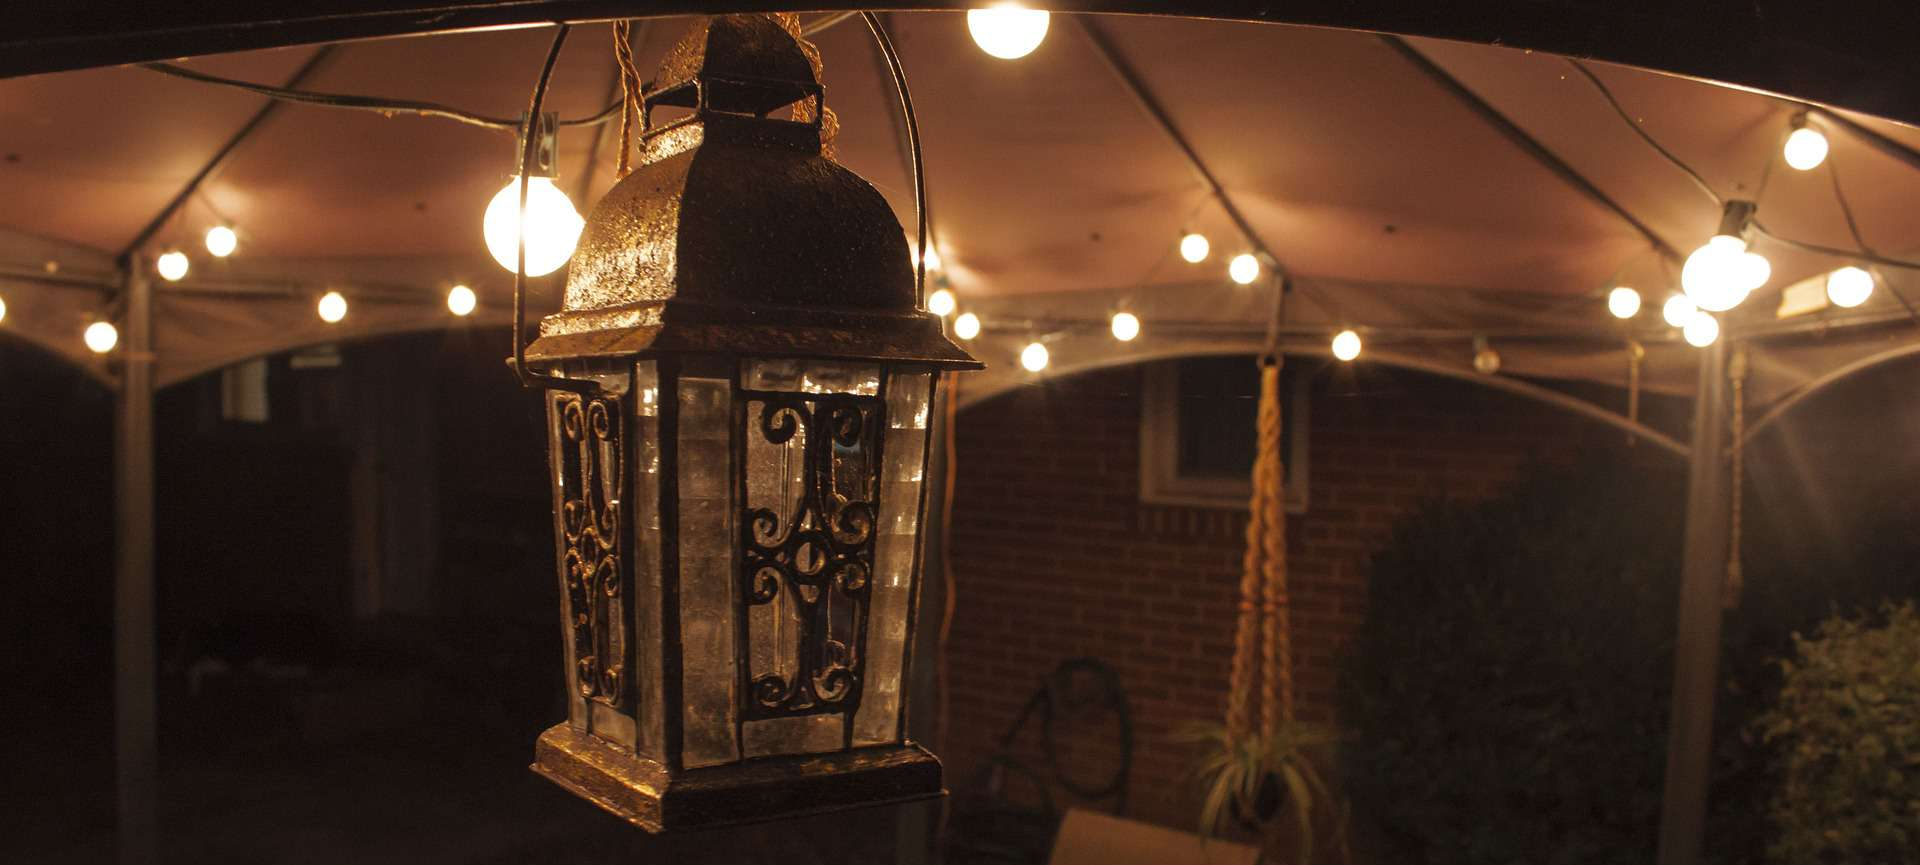 An image of garden shelter and lights